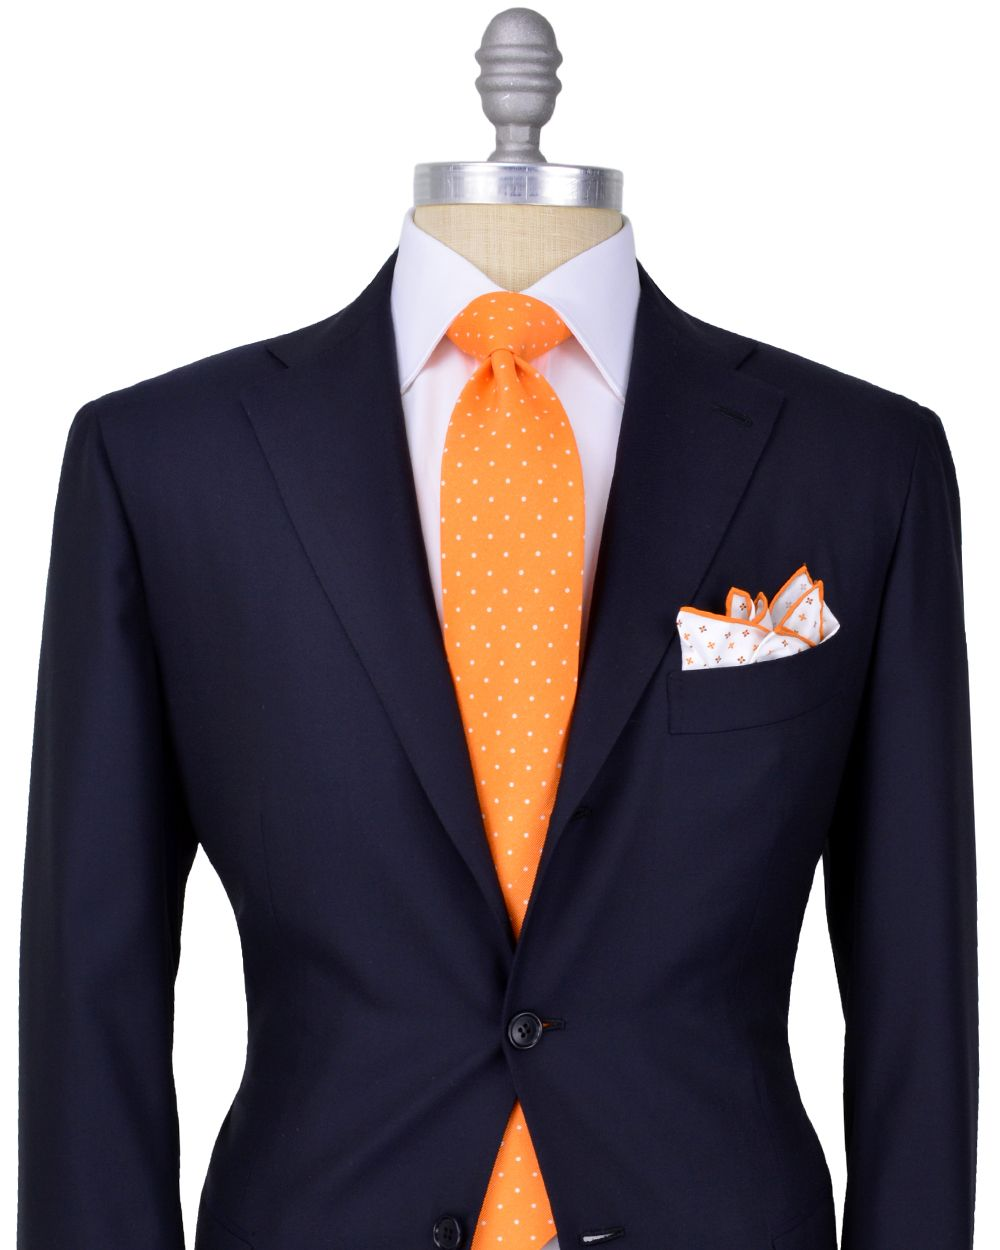 Kiton | Solid Navy Suit | Apparel | Men's